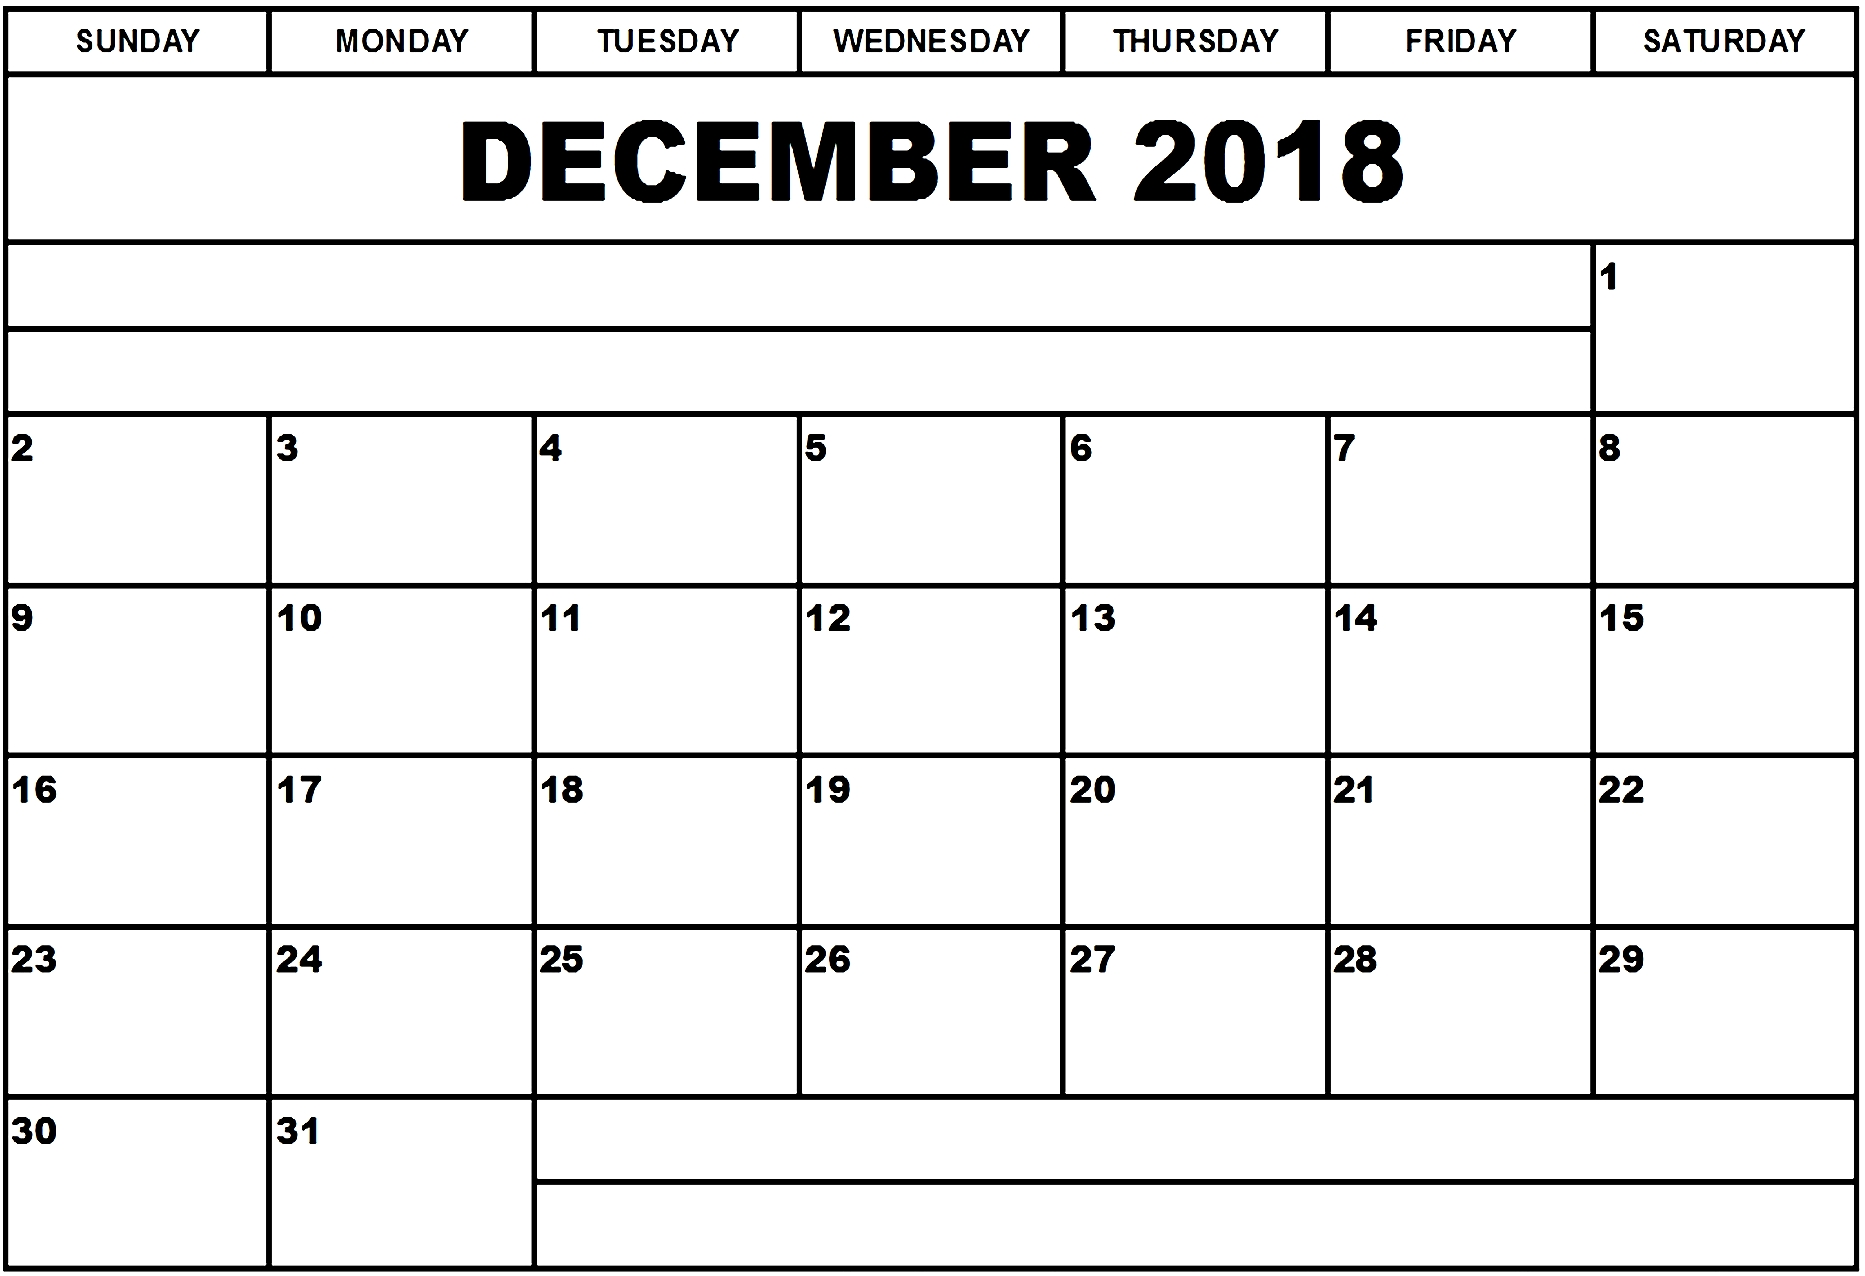 December 2018 Printable Calendar Blank With Notes